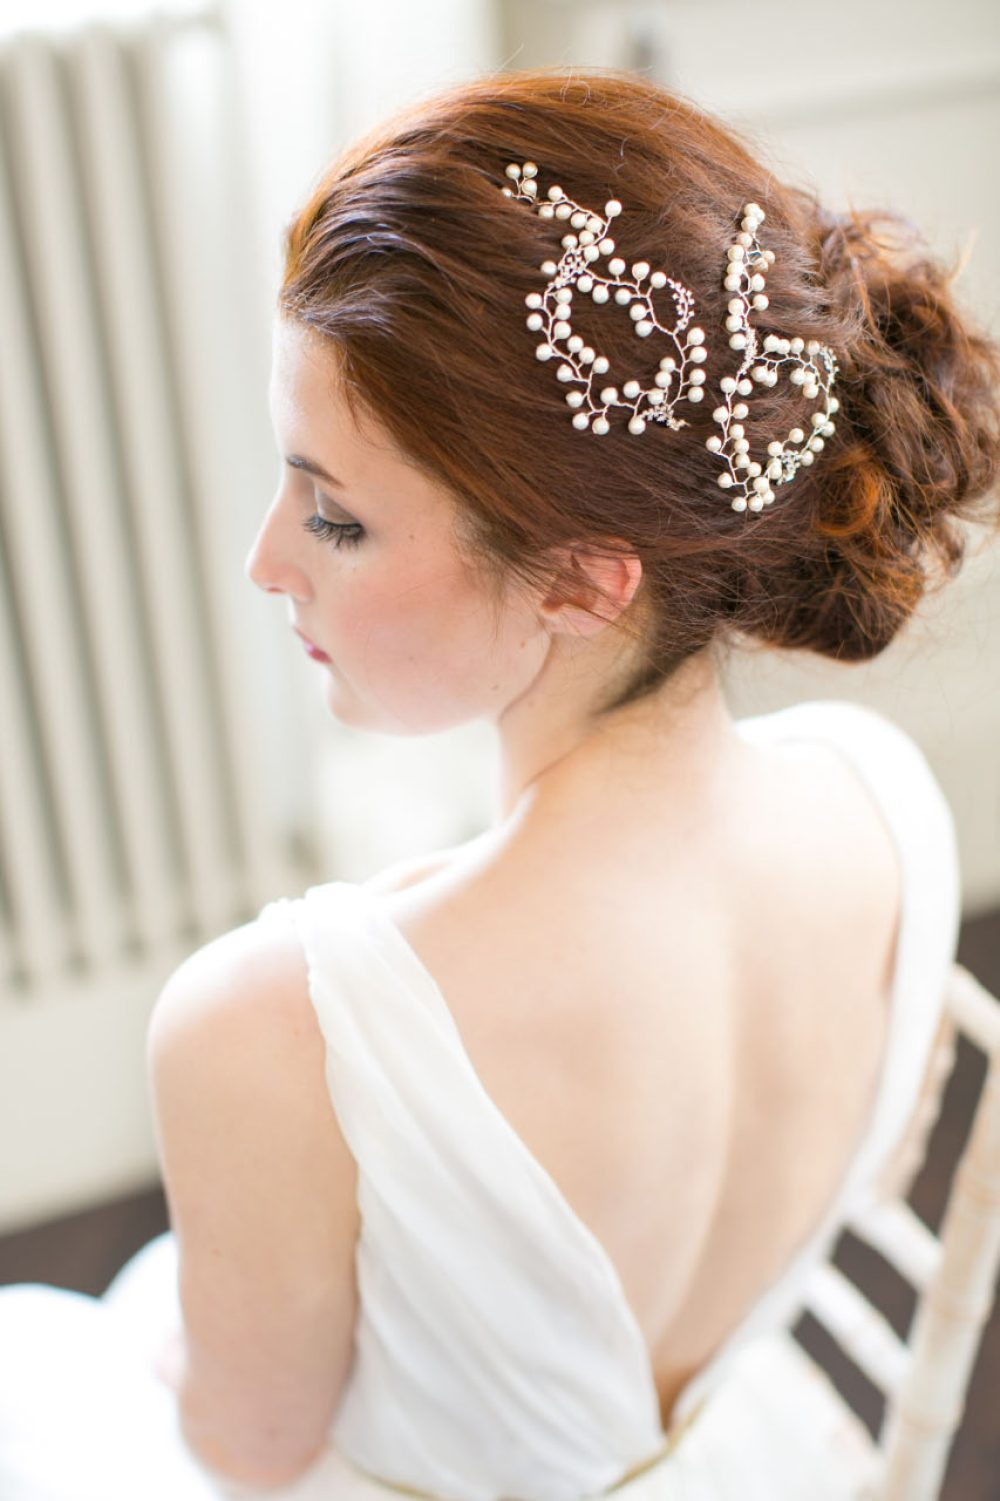 victoria-millesime, babys-breath-pearl-hair-vine-pins, Image by Anneli Marinovich, gold dust collection